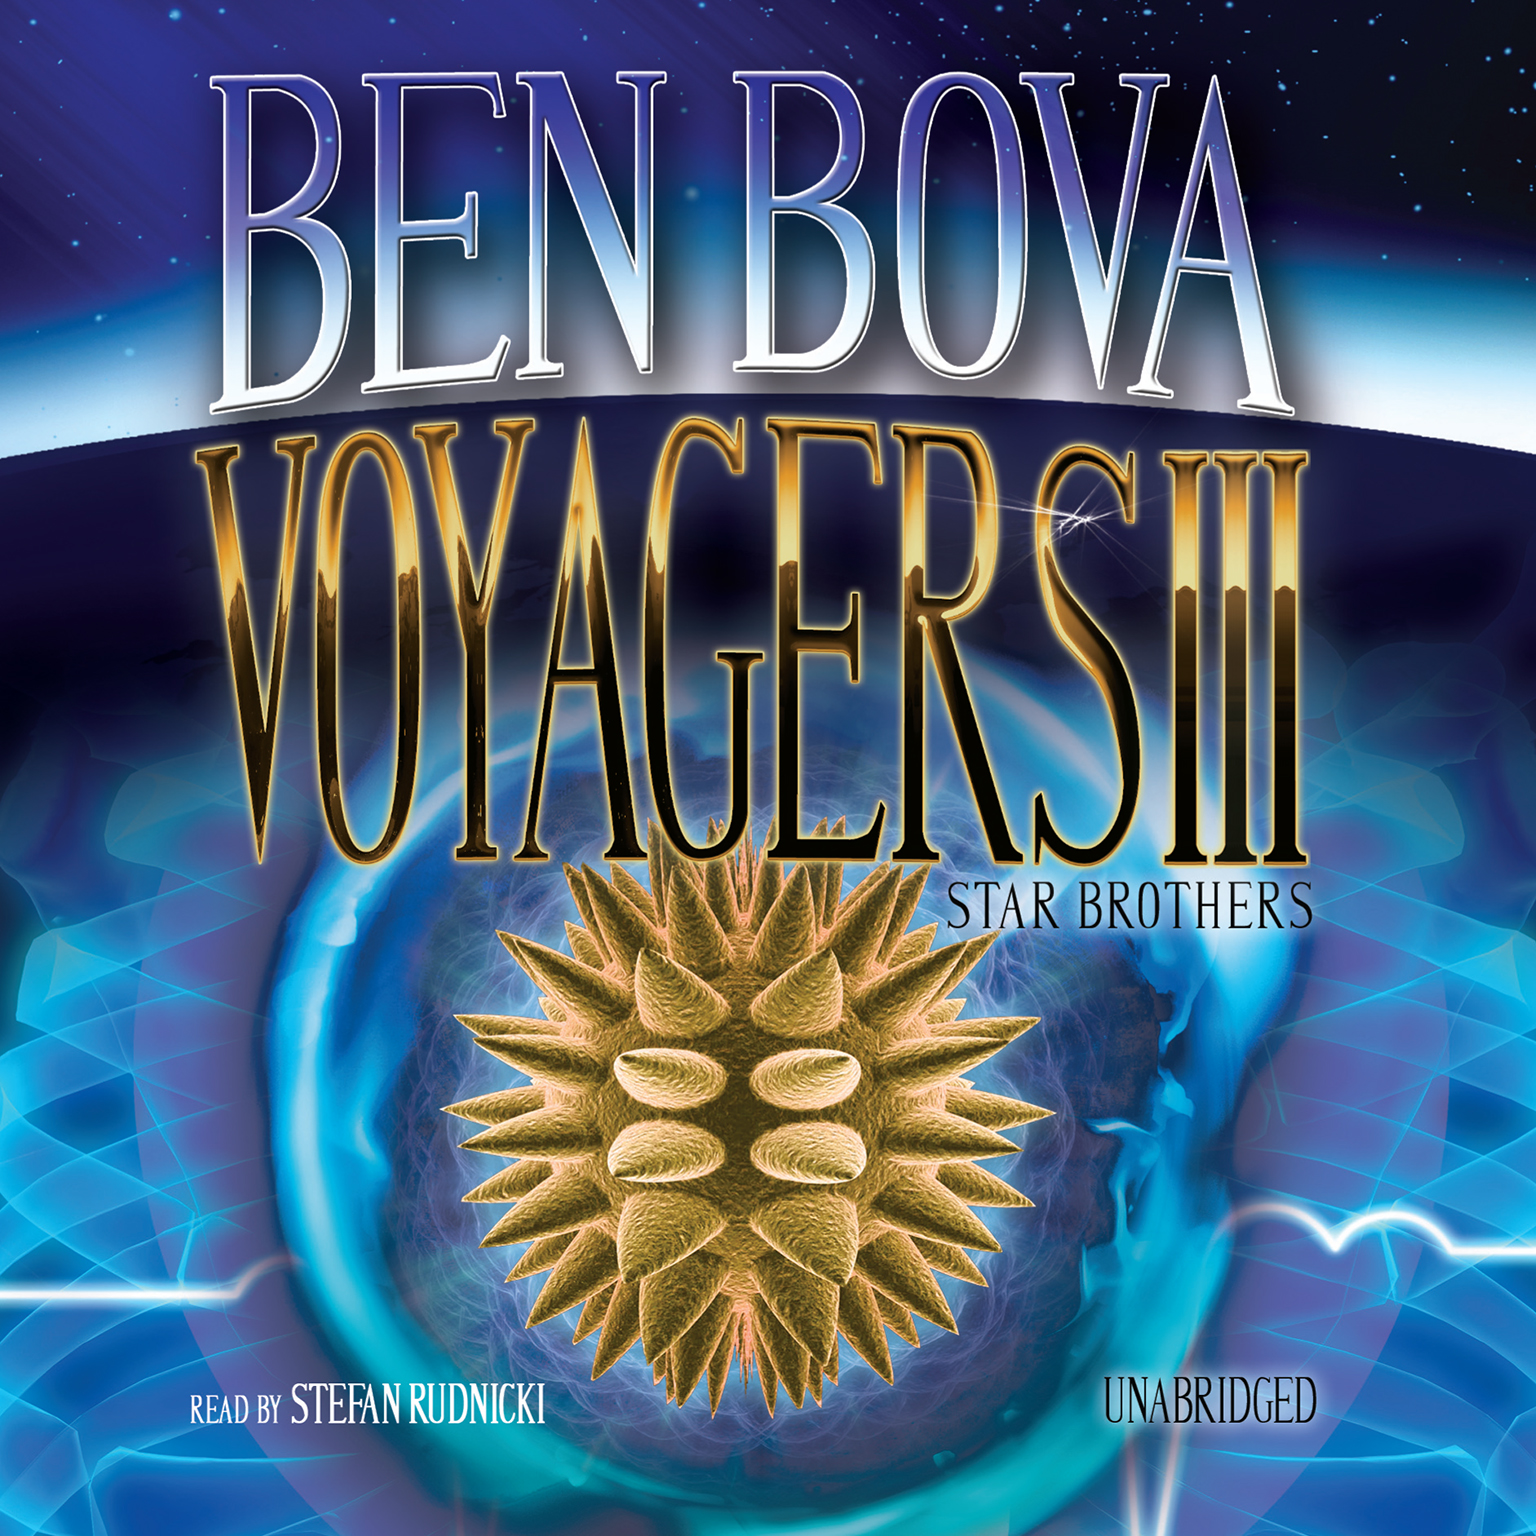 Printable Voyagers III: Star Brothers Audiobook Cover Art